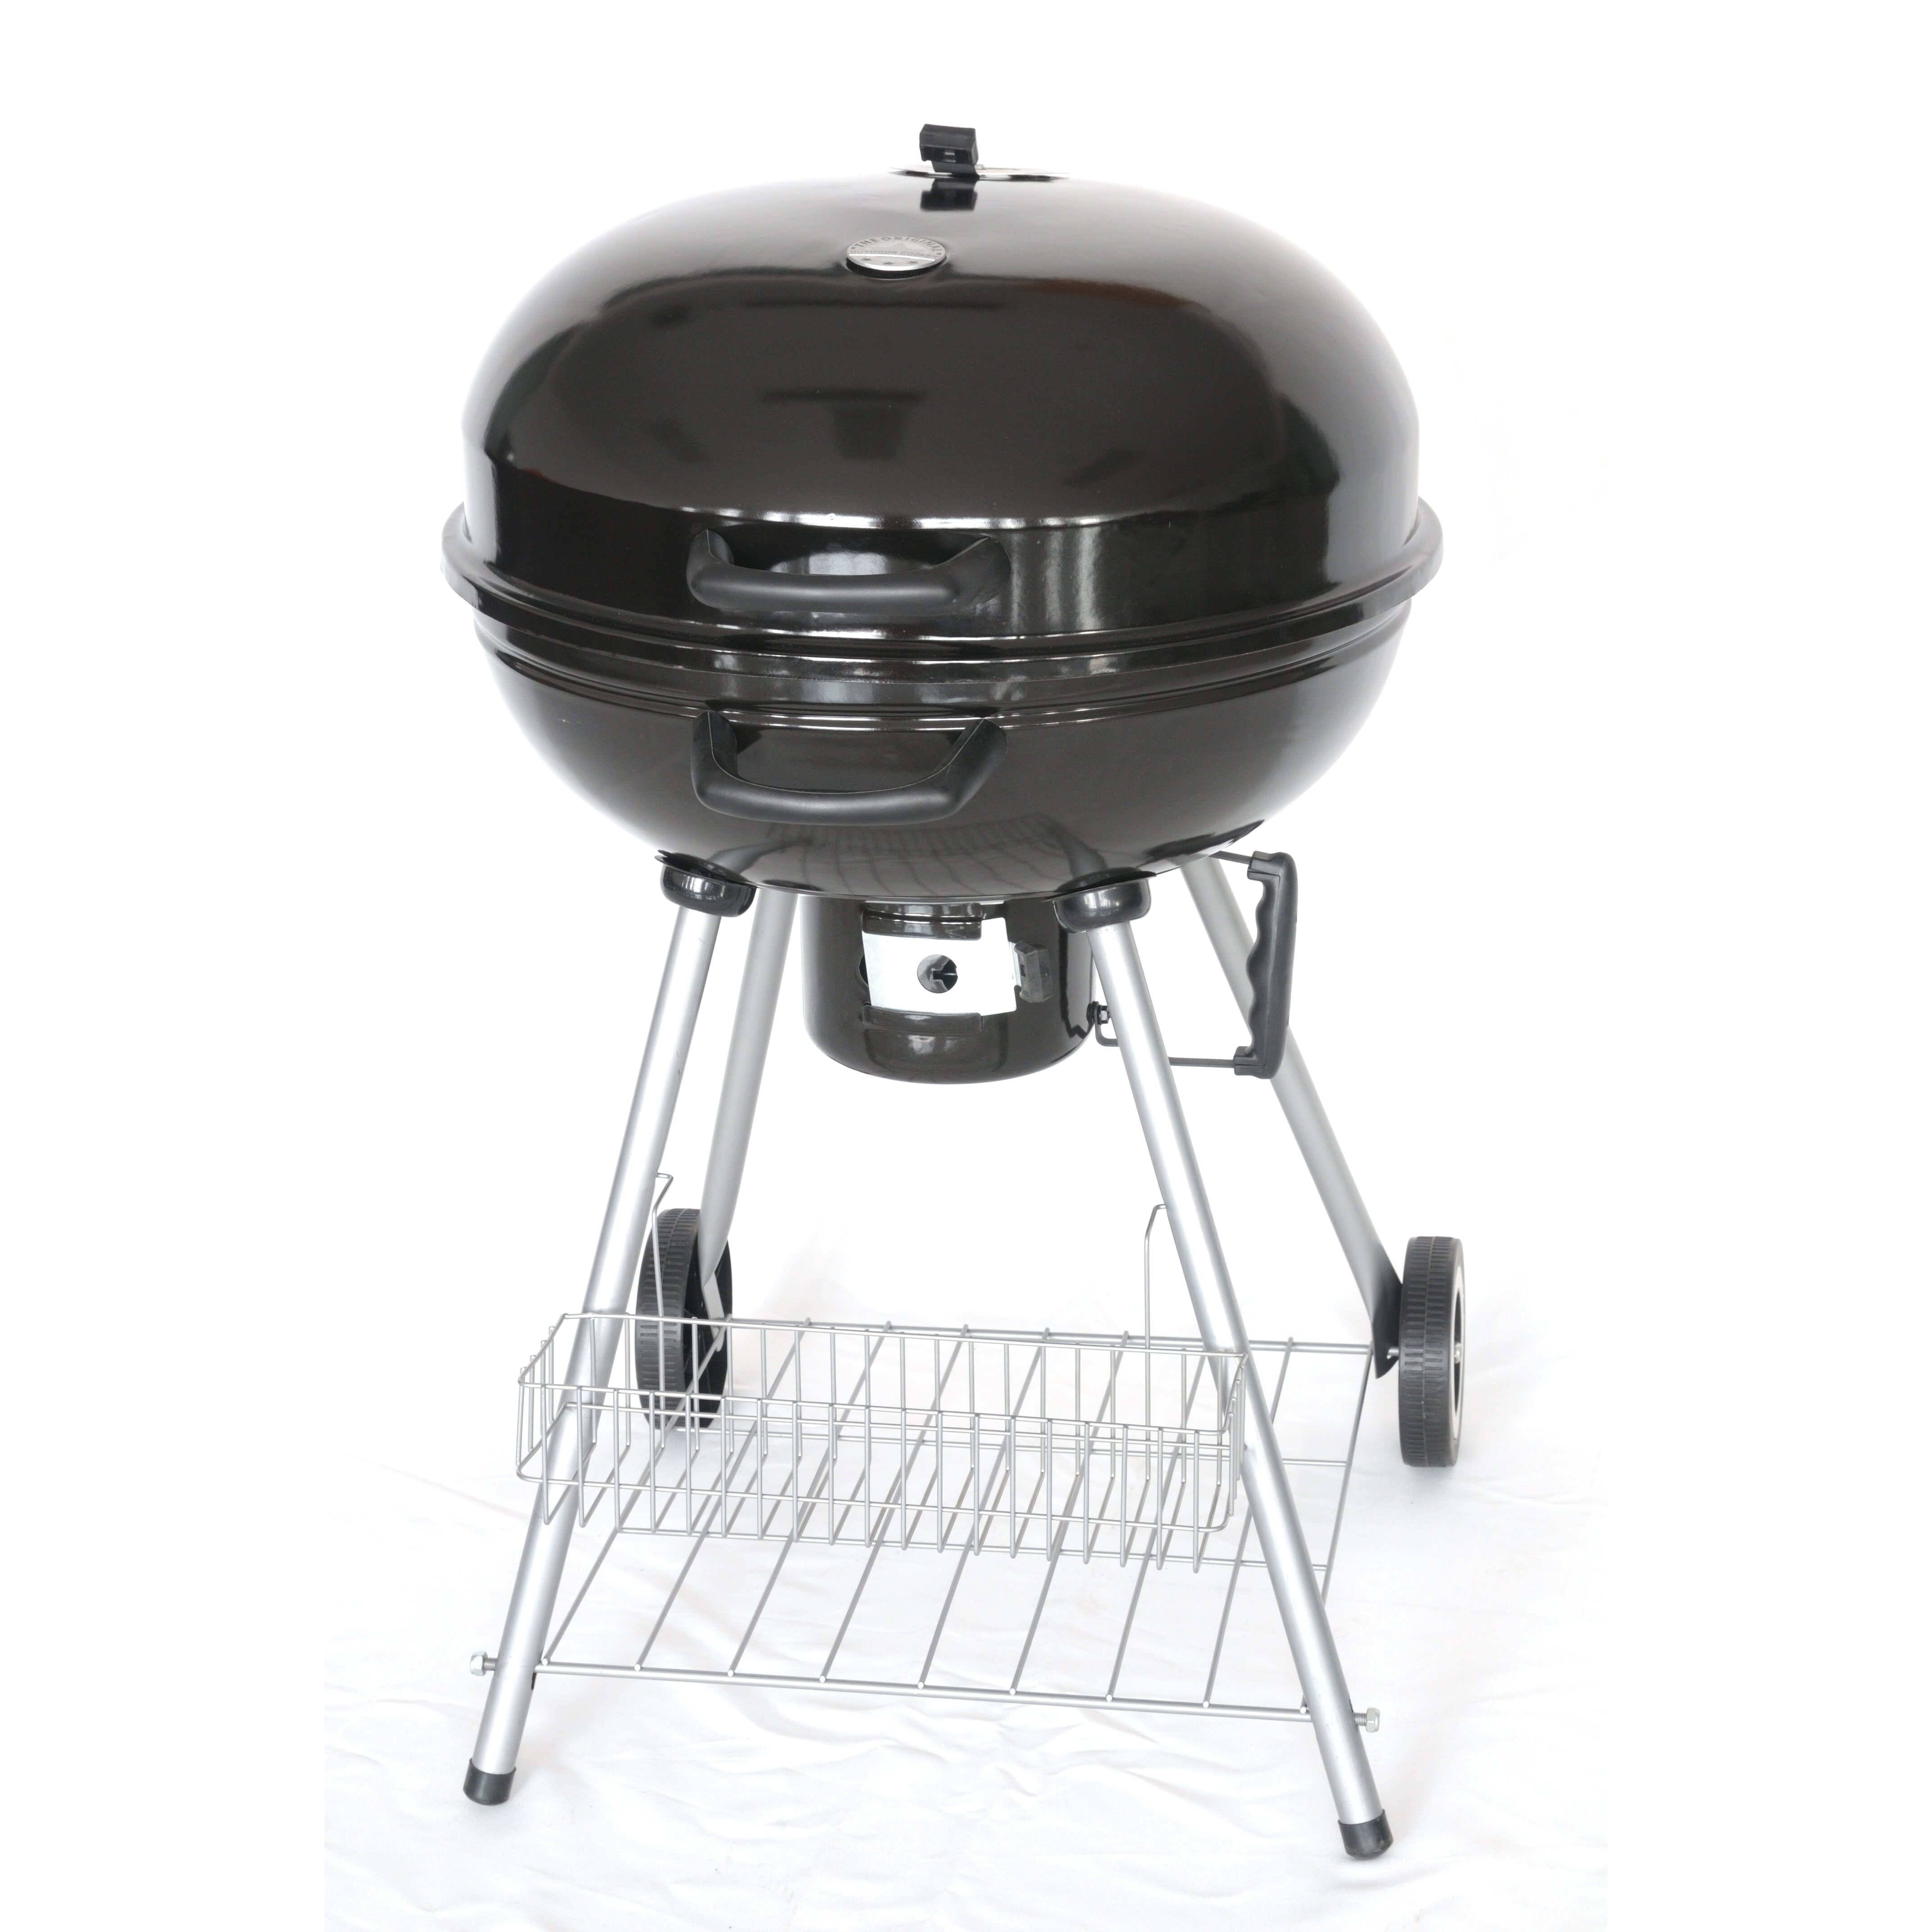 backyard grill 22 5 inch kettle charcoal grill 28 images backyard grill 22 inch charcoal